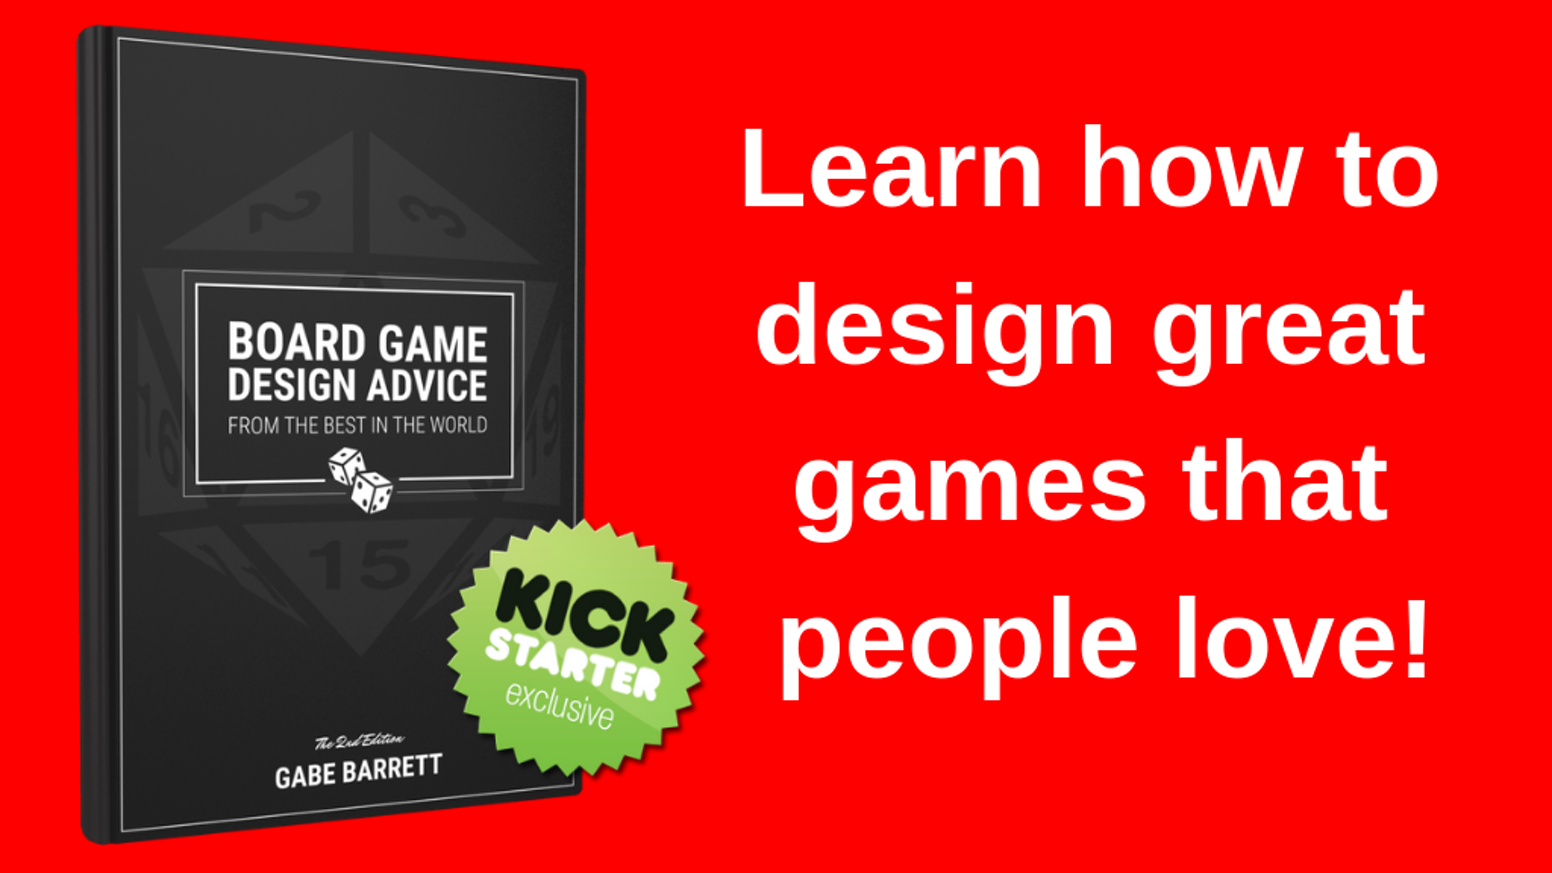 c23645c4ab3a6 A book to help you design great games people love. Learn from 100+ designers